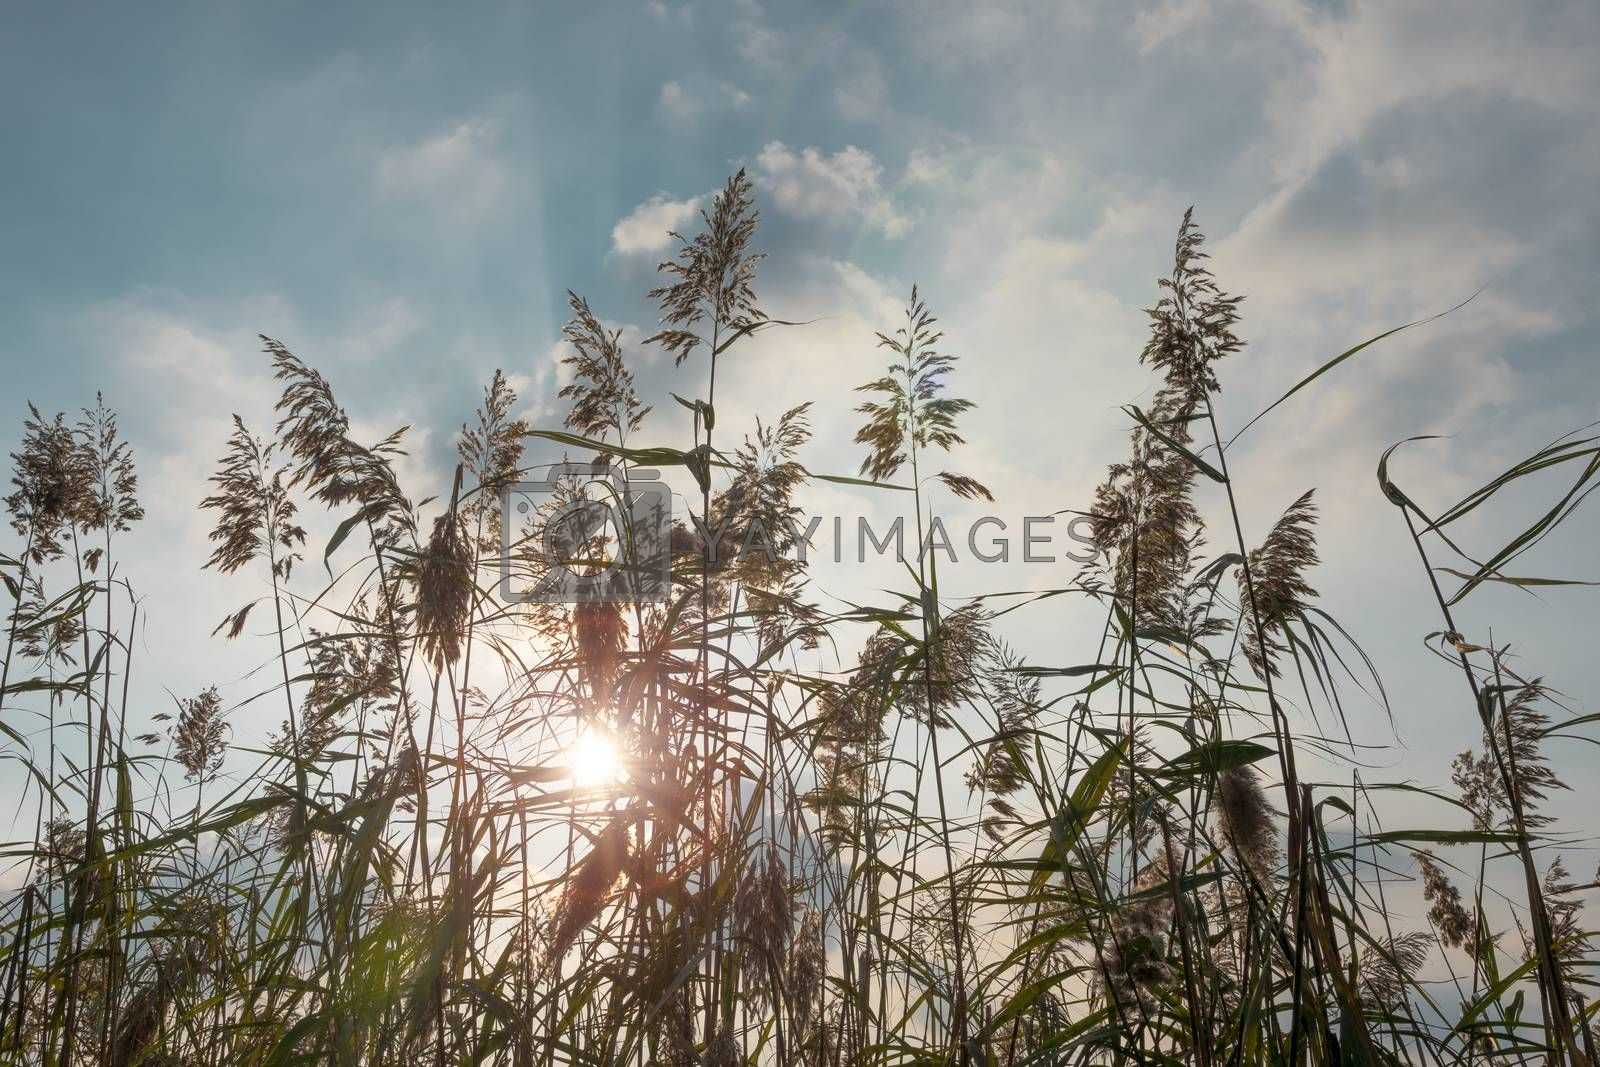 Royalty free image of Ears waving in backlight. by maramade